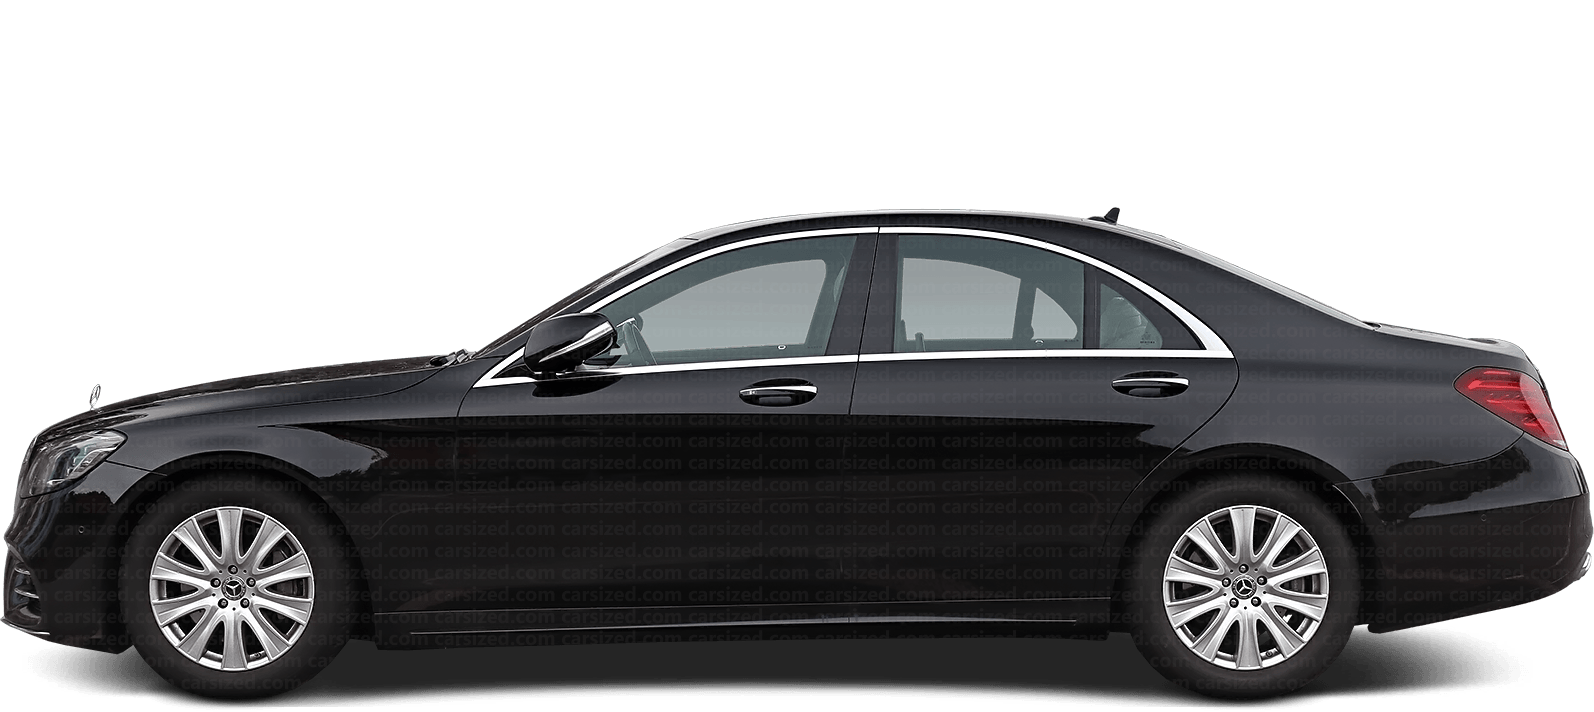 Mercedes-Benz S-Class Sedan  2018 - 2020